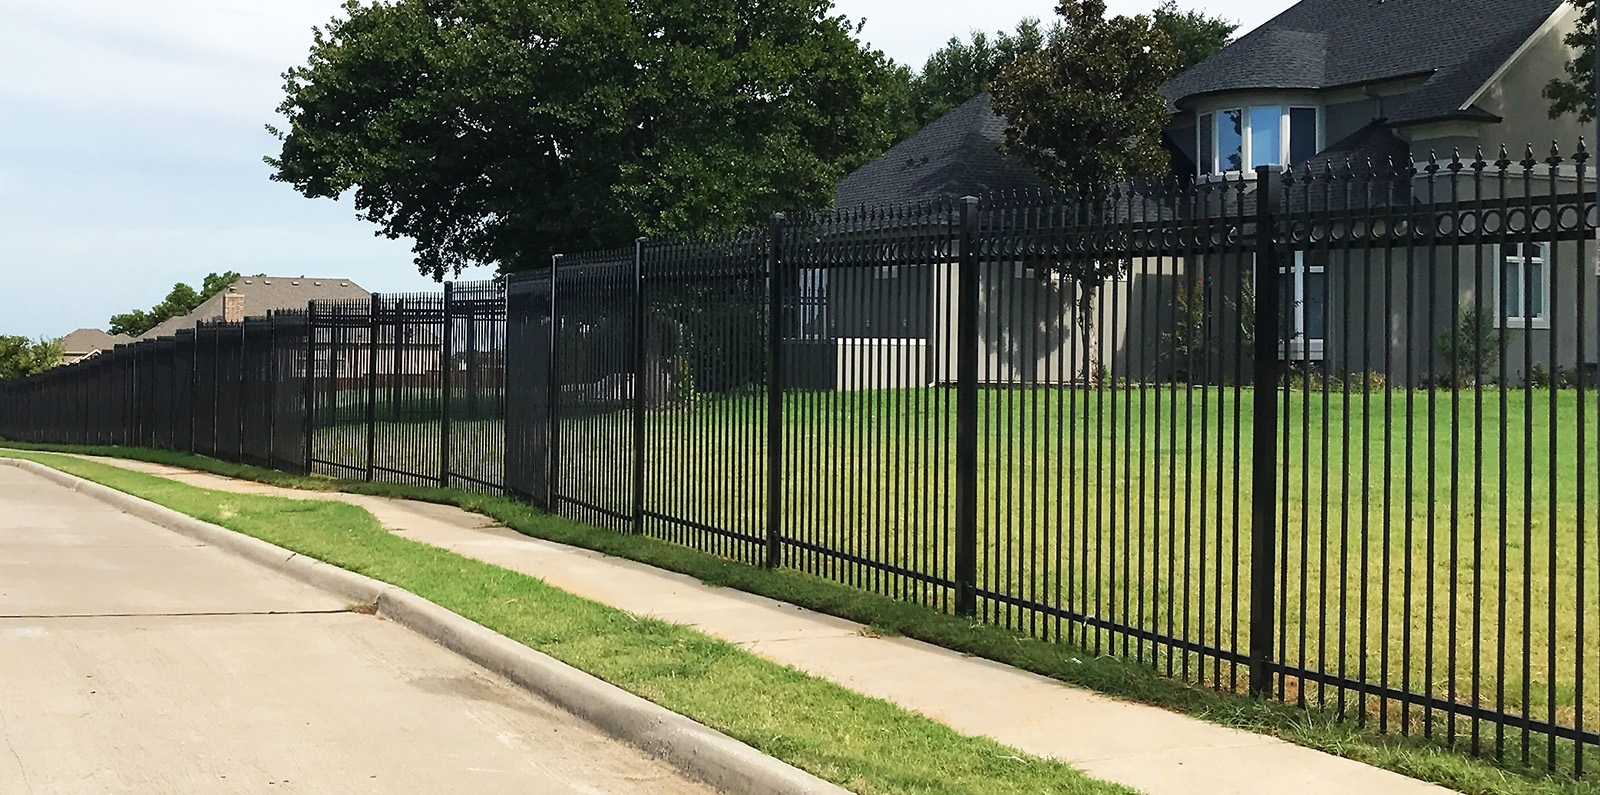 simple wrought iron fence. Wrought Iron Fence Installation Instructions Simple Wrought Iron Fence T